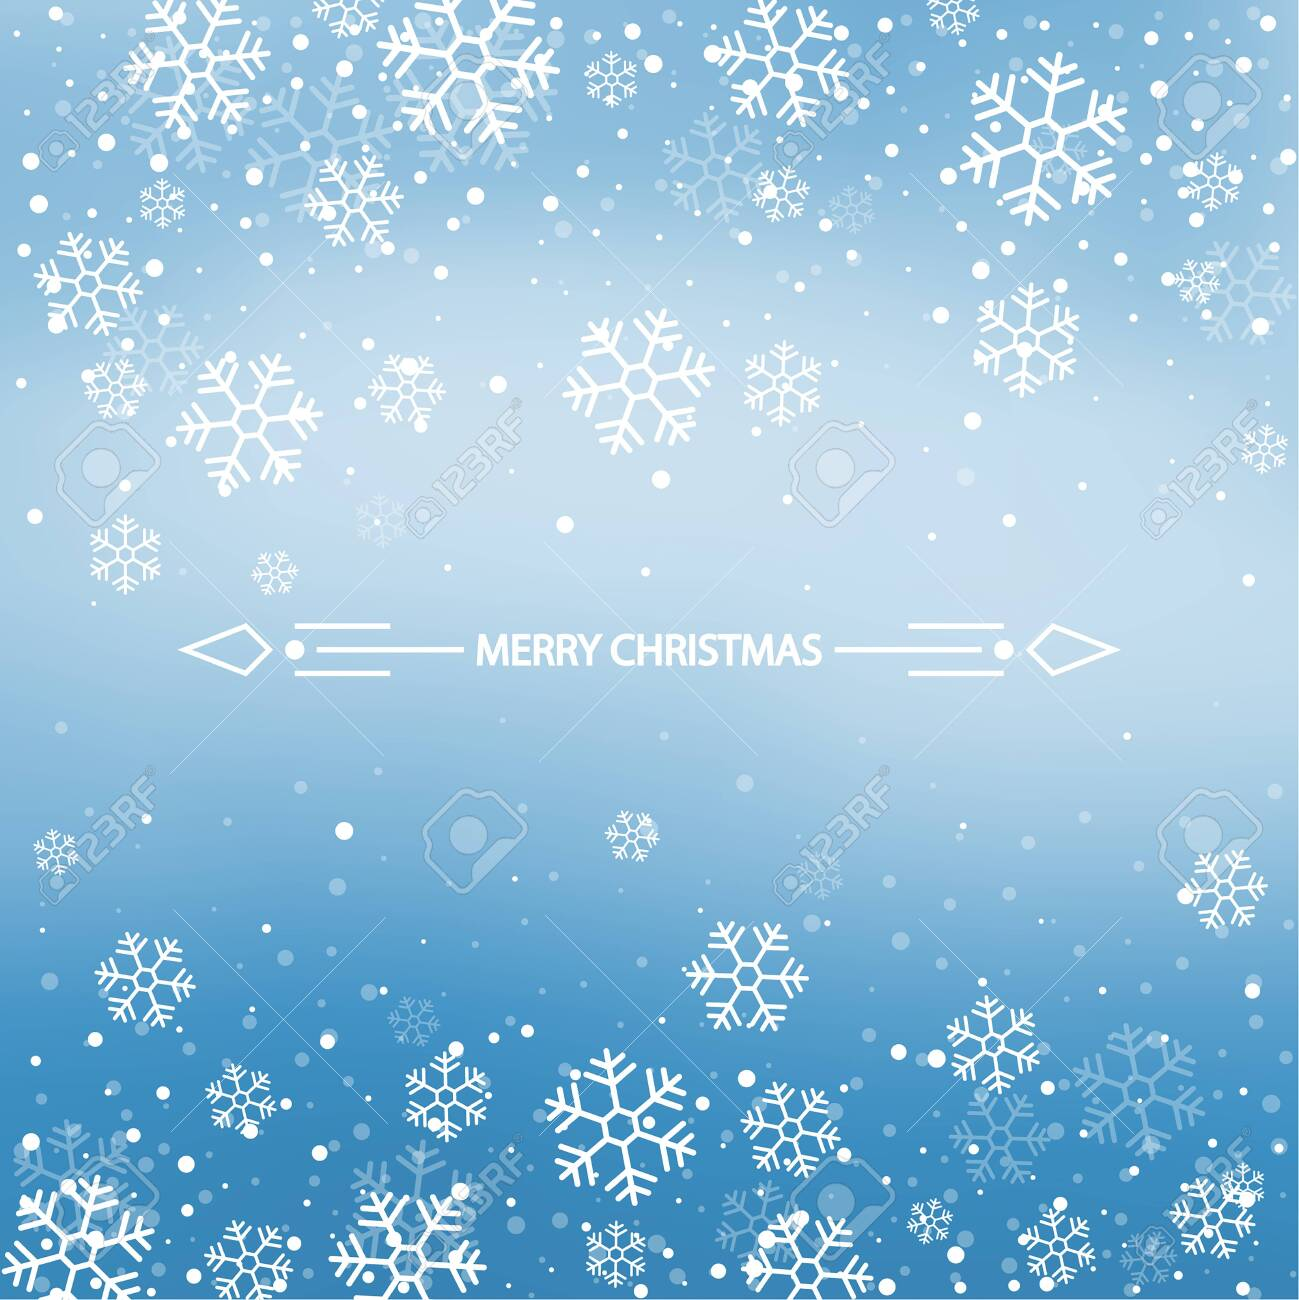 Christmas winter blue background. - 135228659